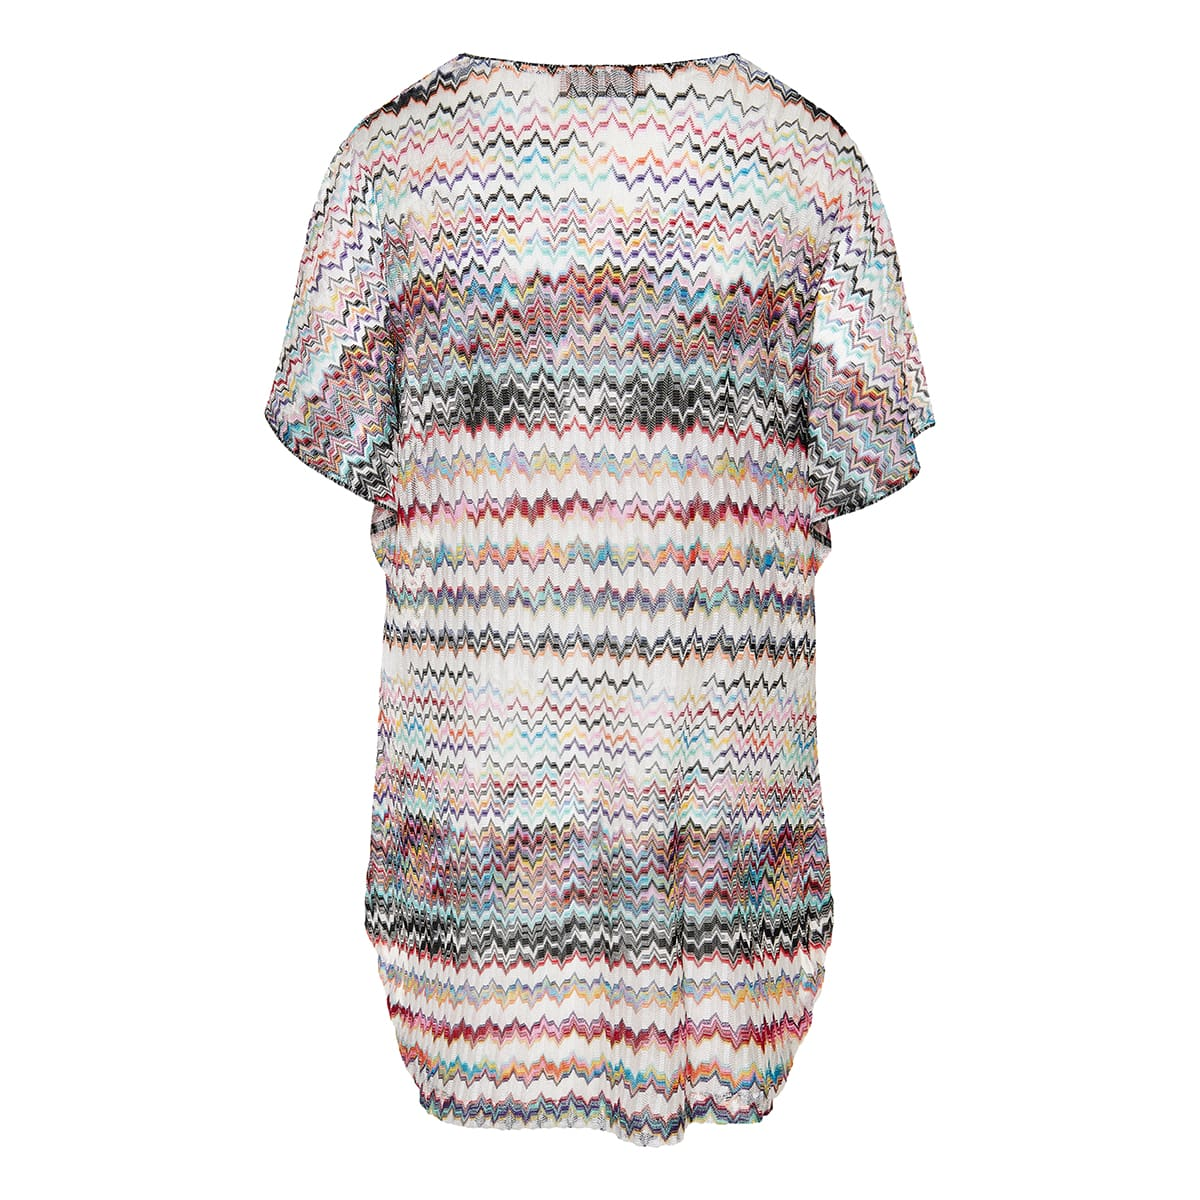 Printed knit cover-up